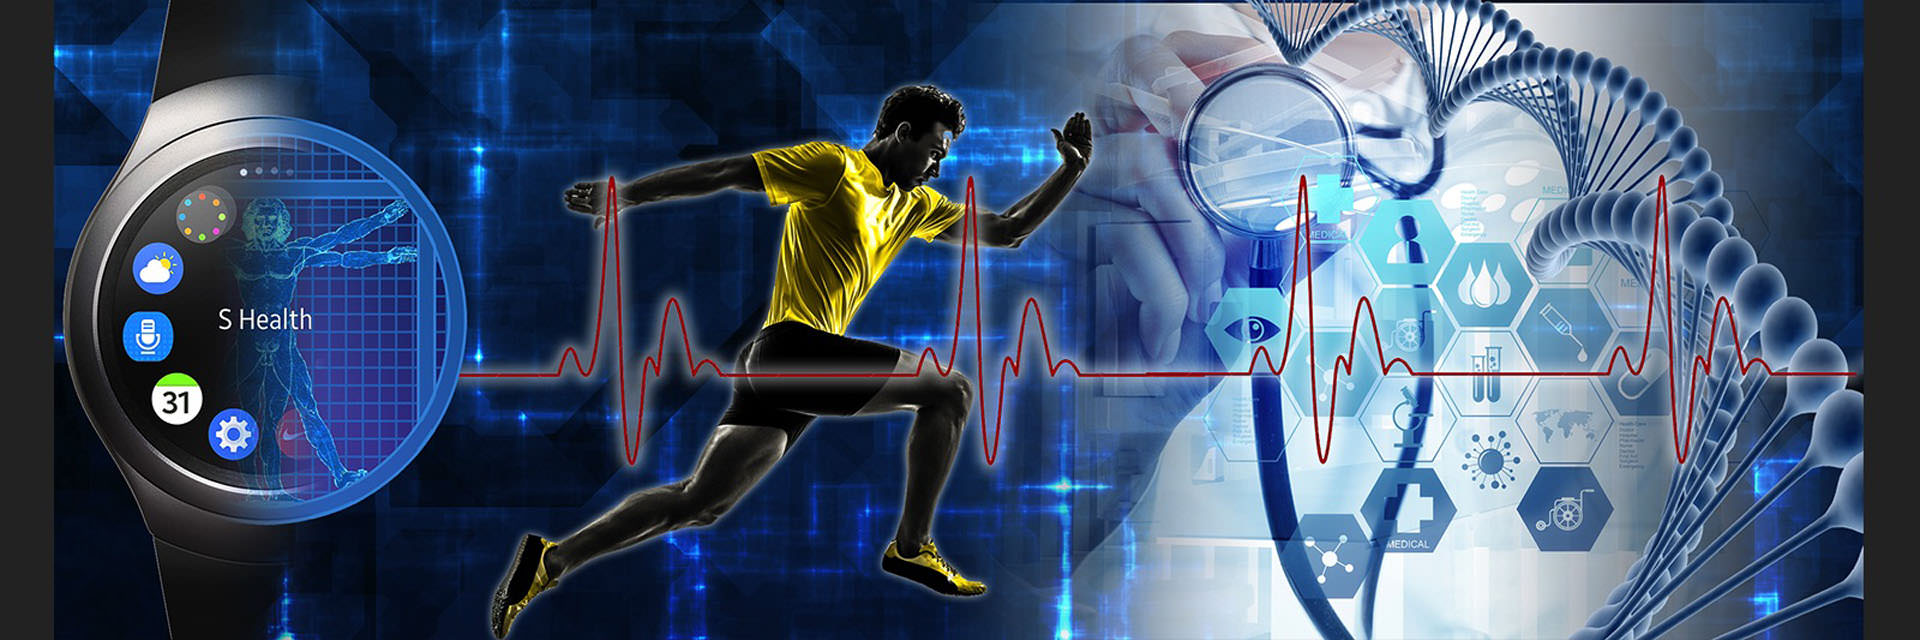 Developing for the Future of Fitness: Taking the Next Steps, Part 1